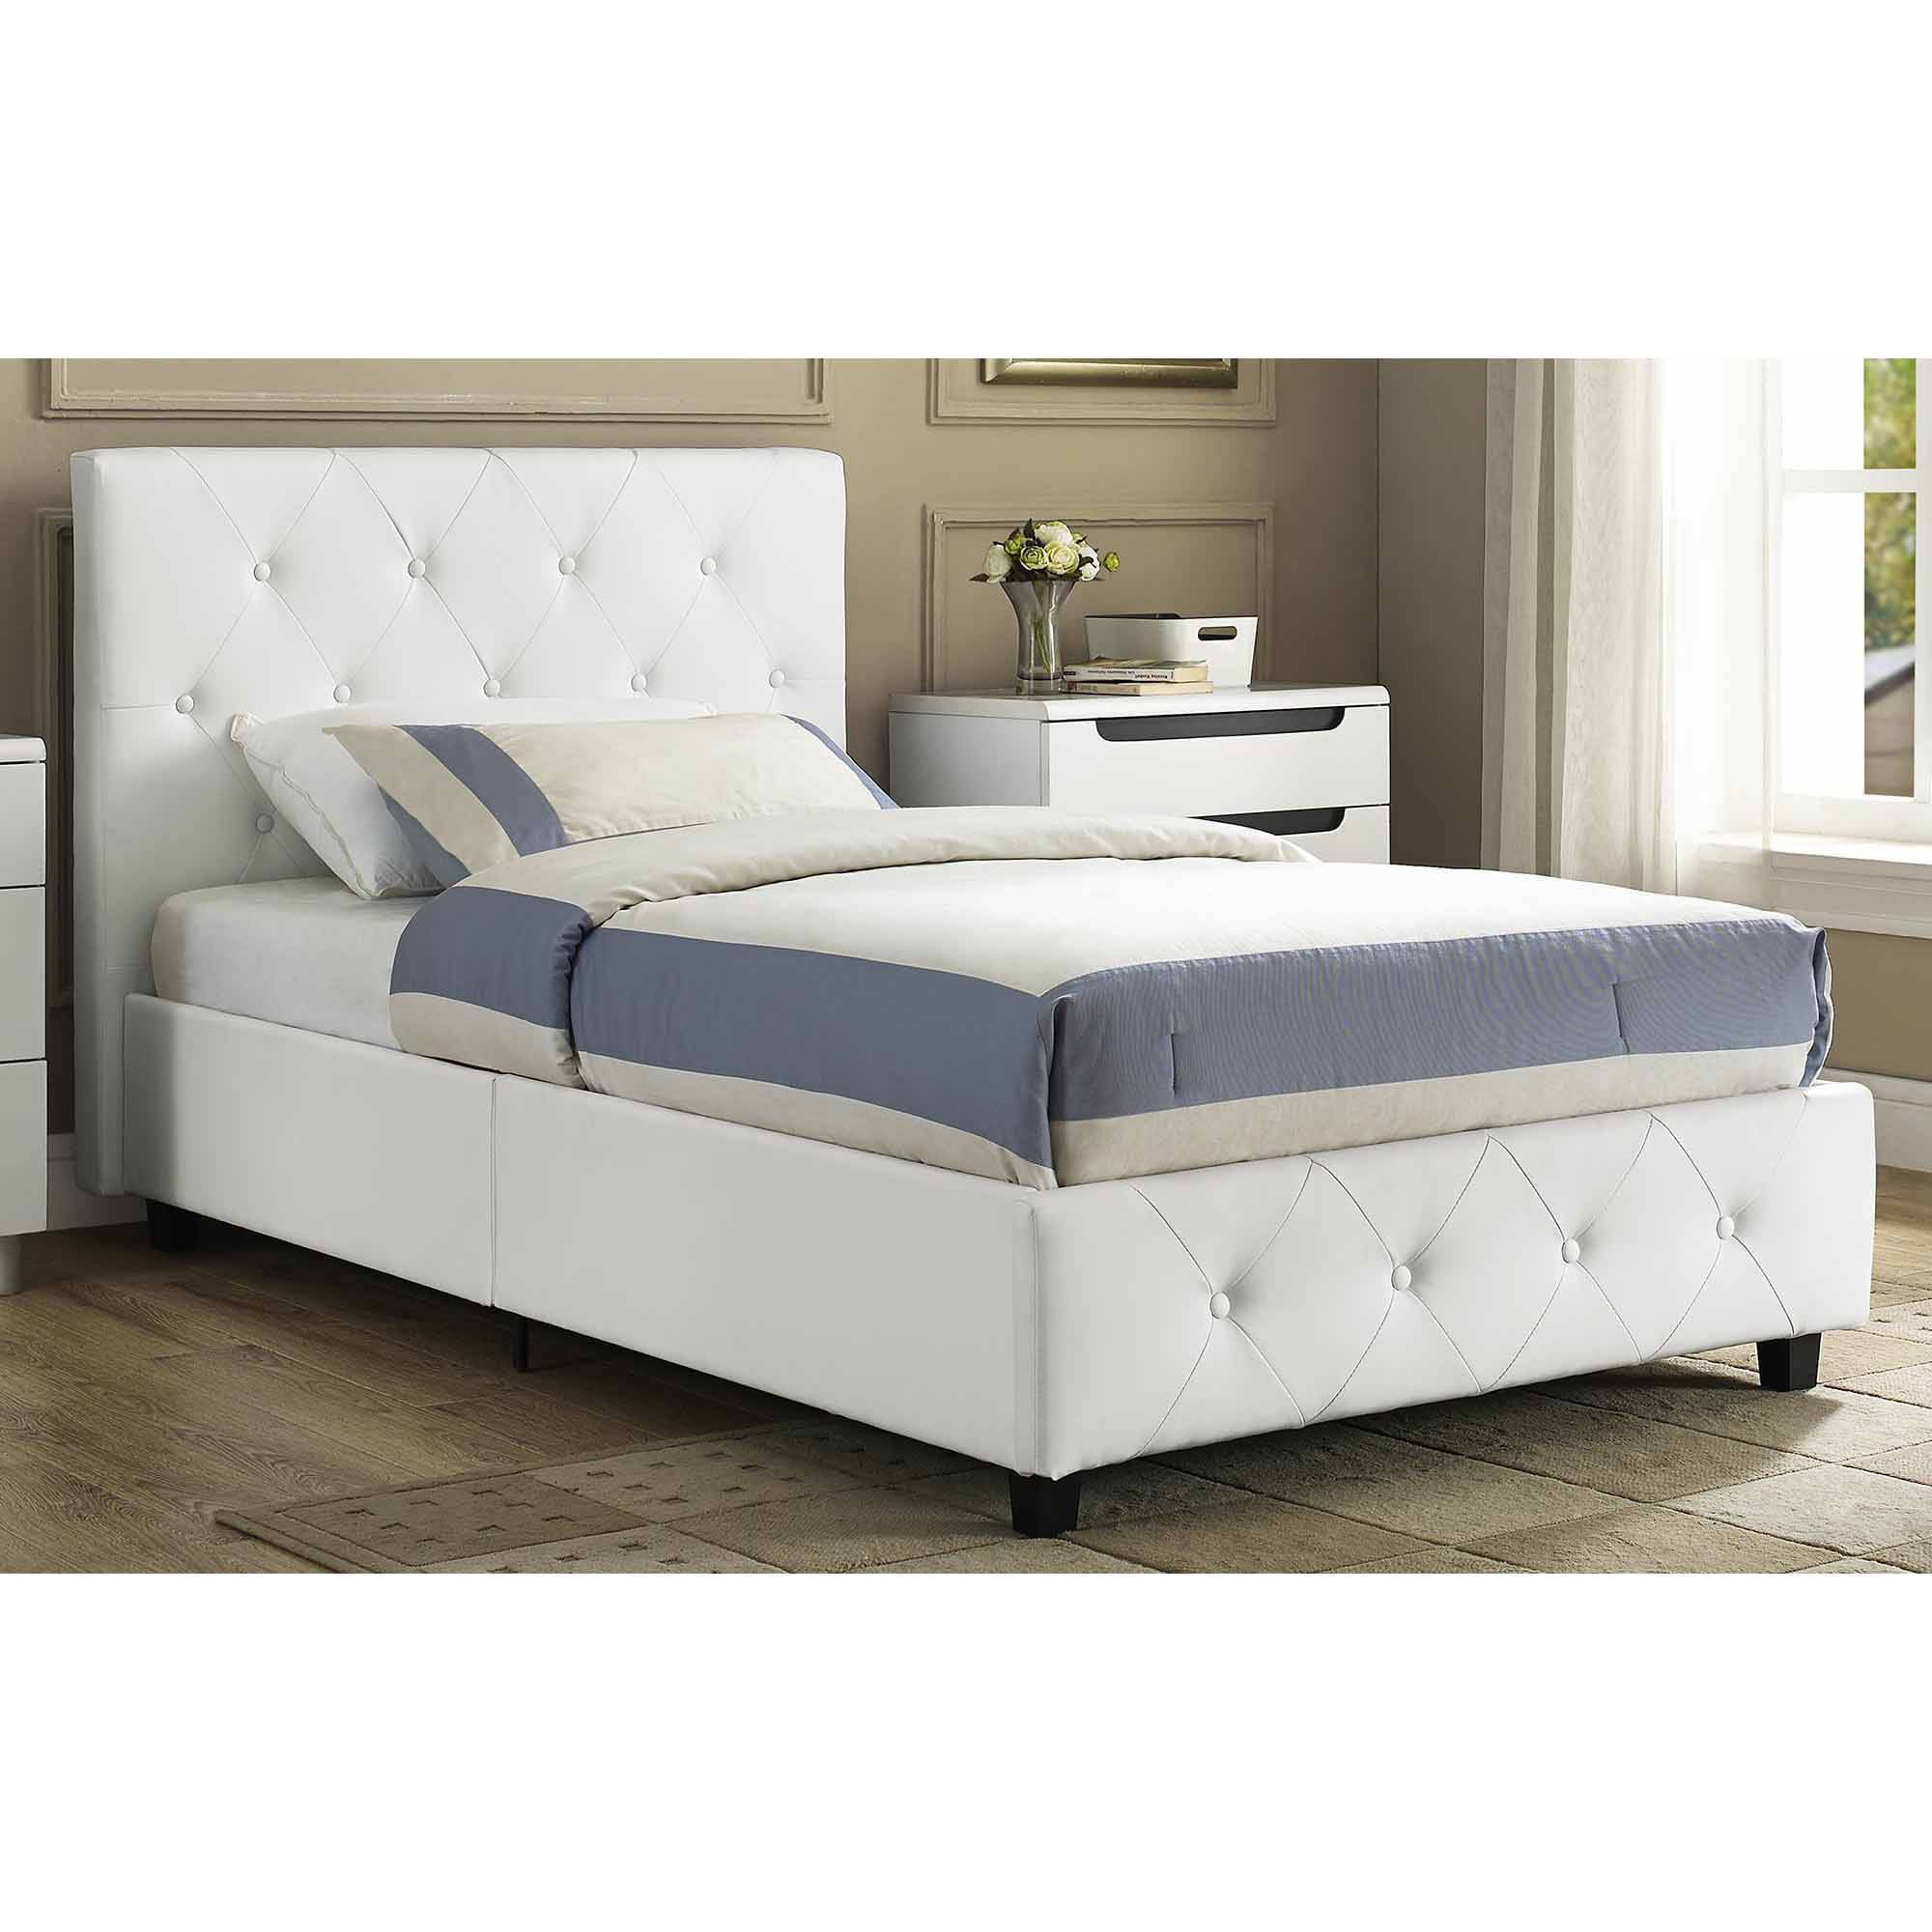 adult roll away beds